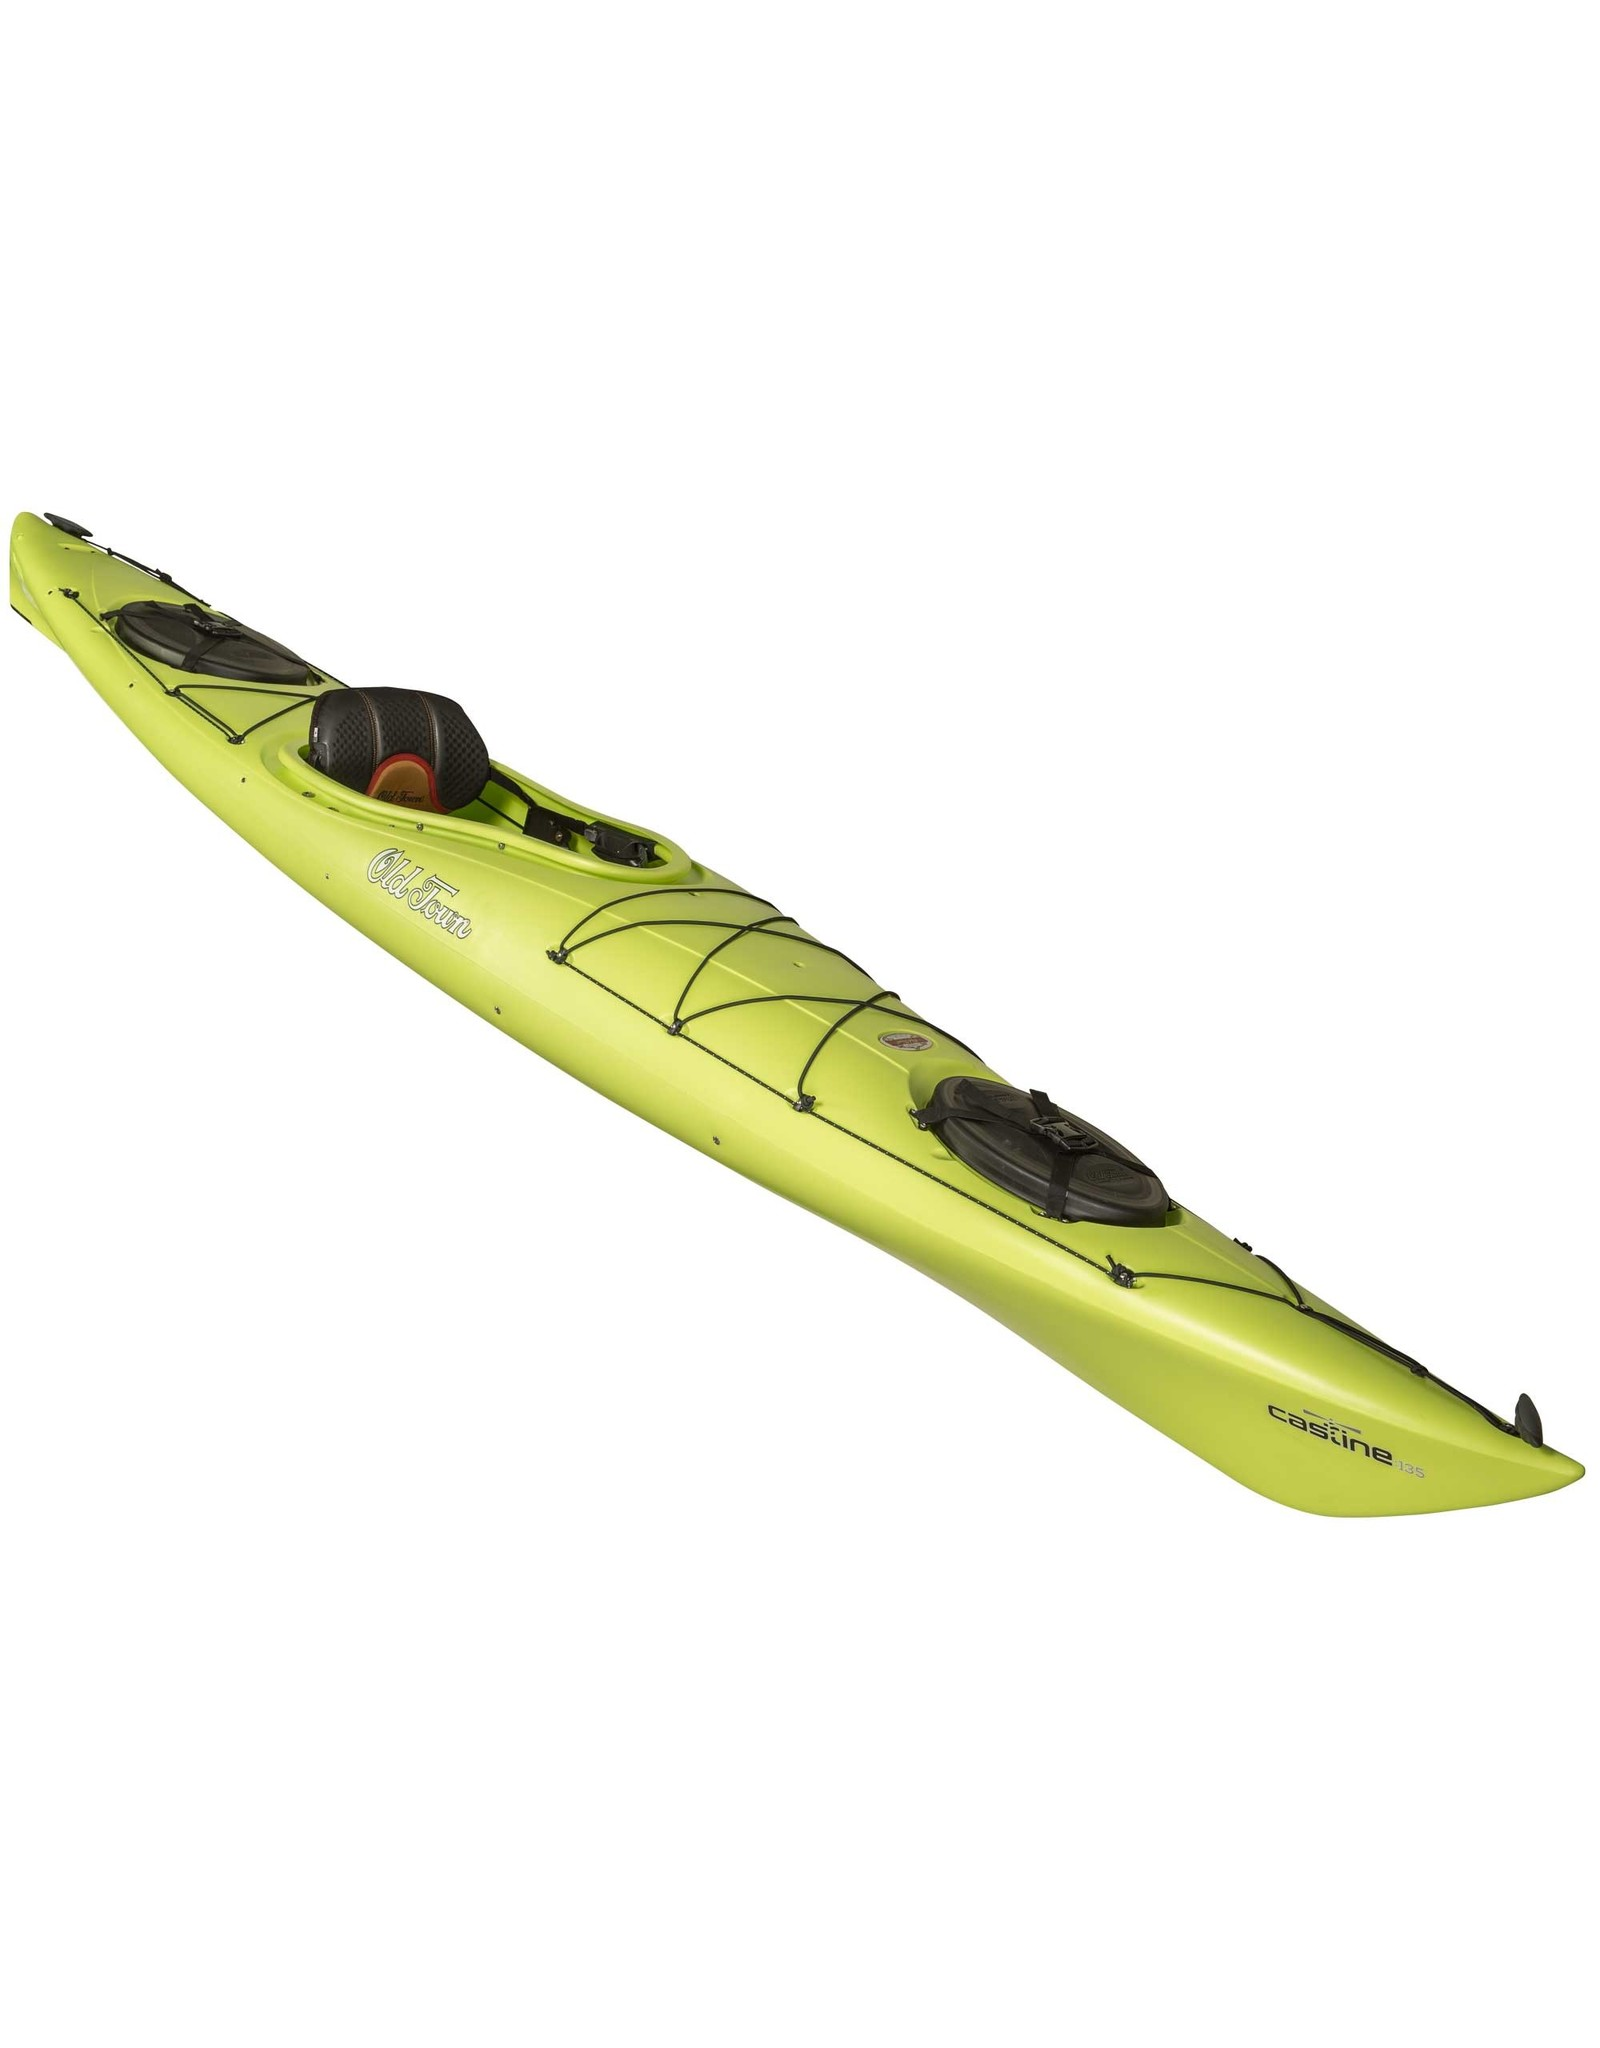 Old Town Old Town kayak Castine